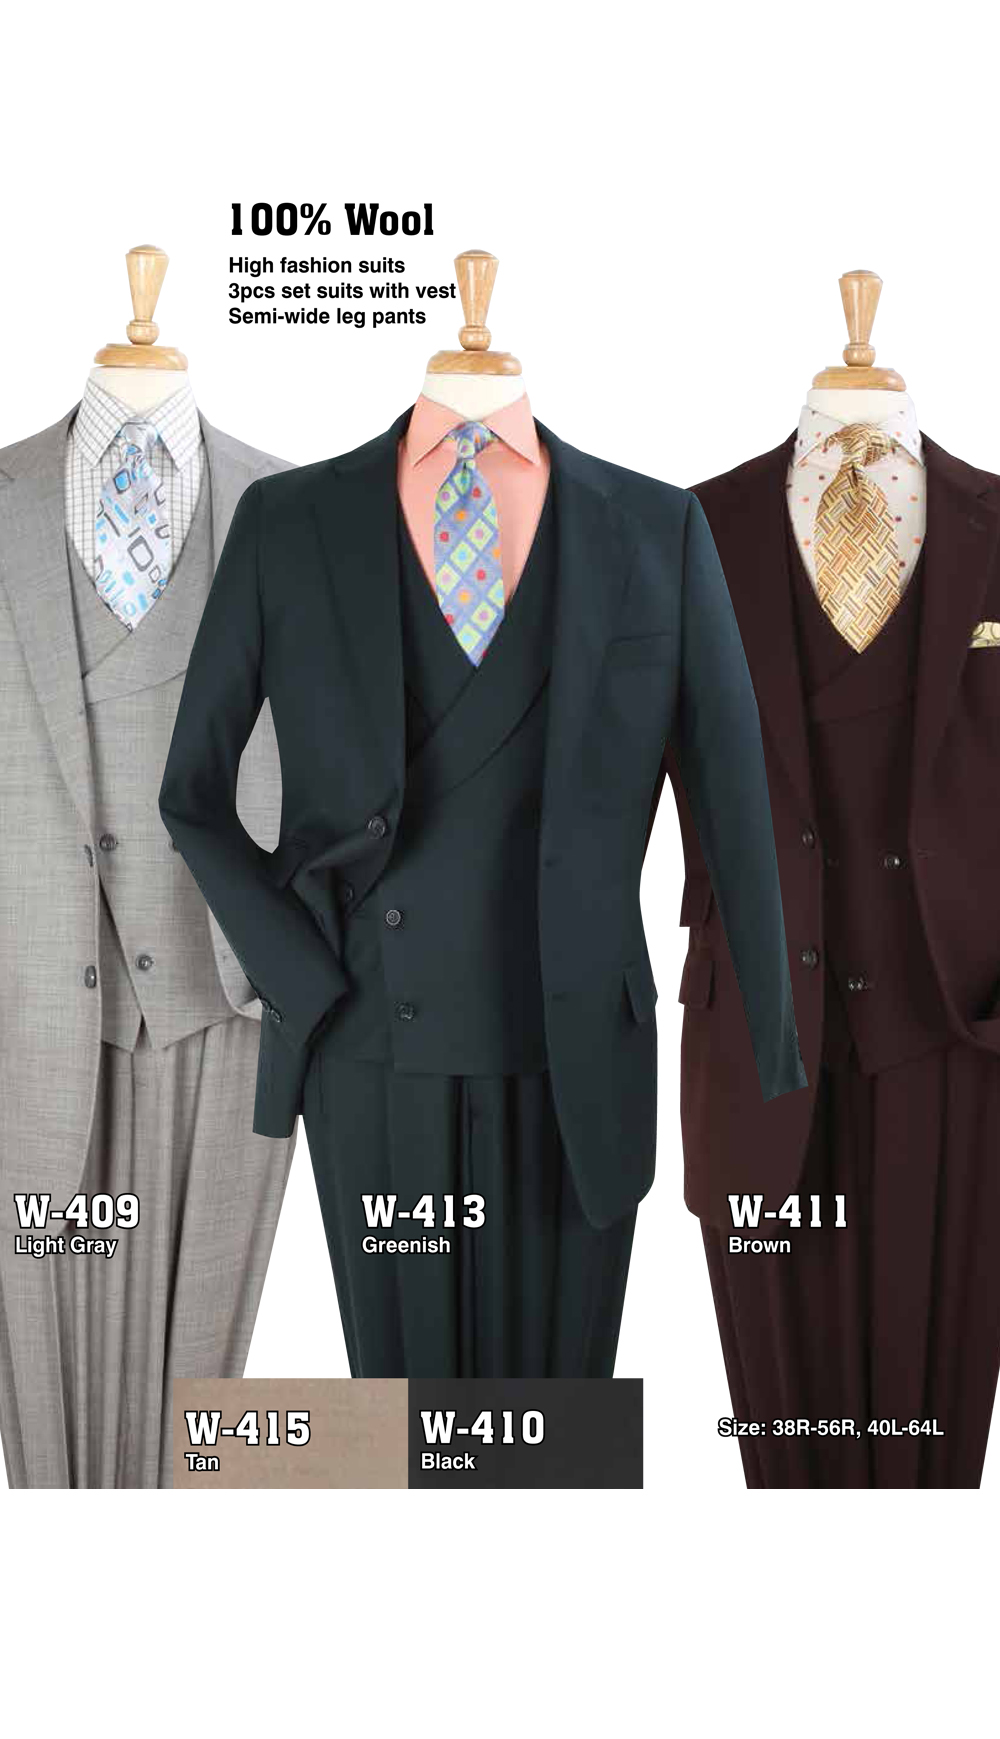 High Fashion Men Suits W-409